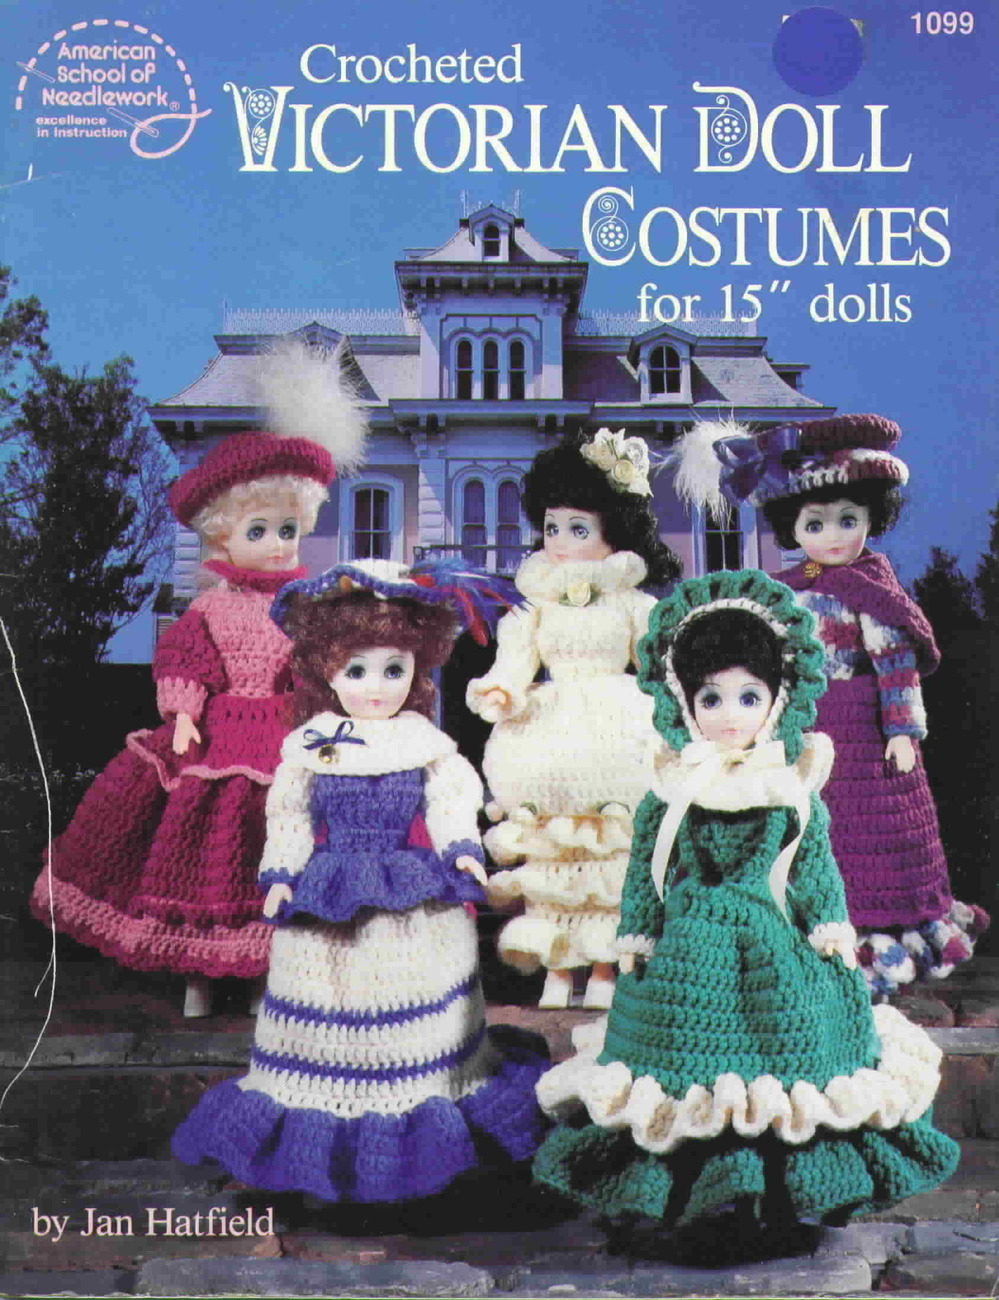 American school of needlework victorian doll costumes